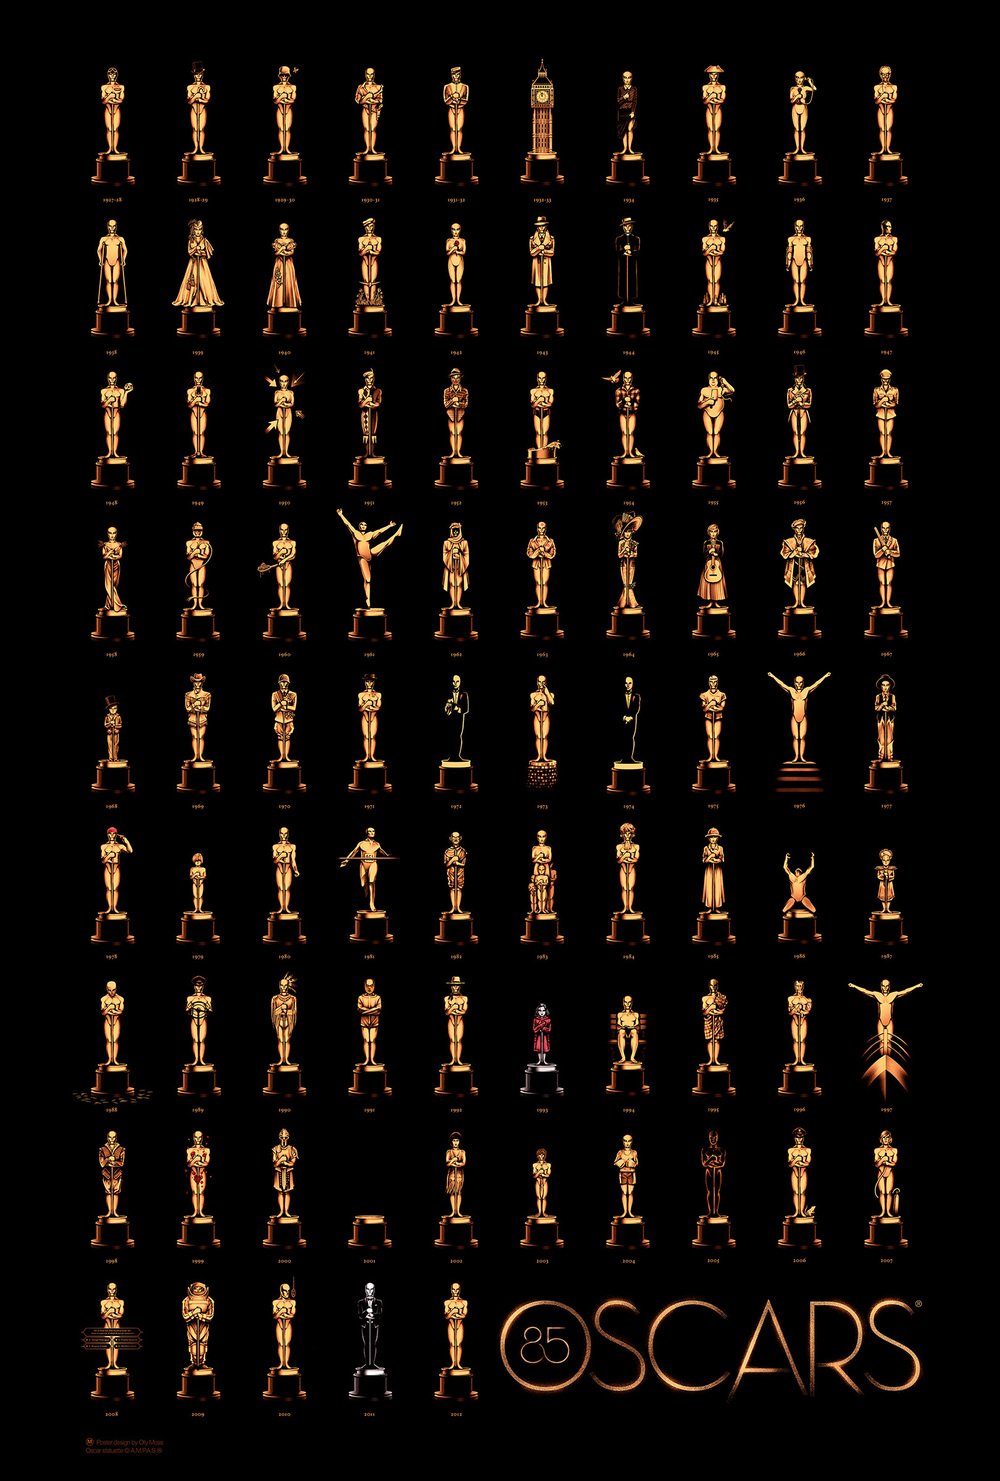 Official '85 Years of Oscars' poster for the 85th Academy Awards by Olly Moss for The Academy and Gallery 1988